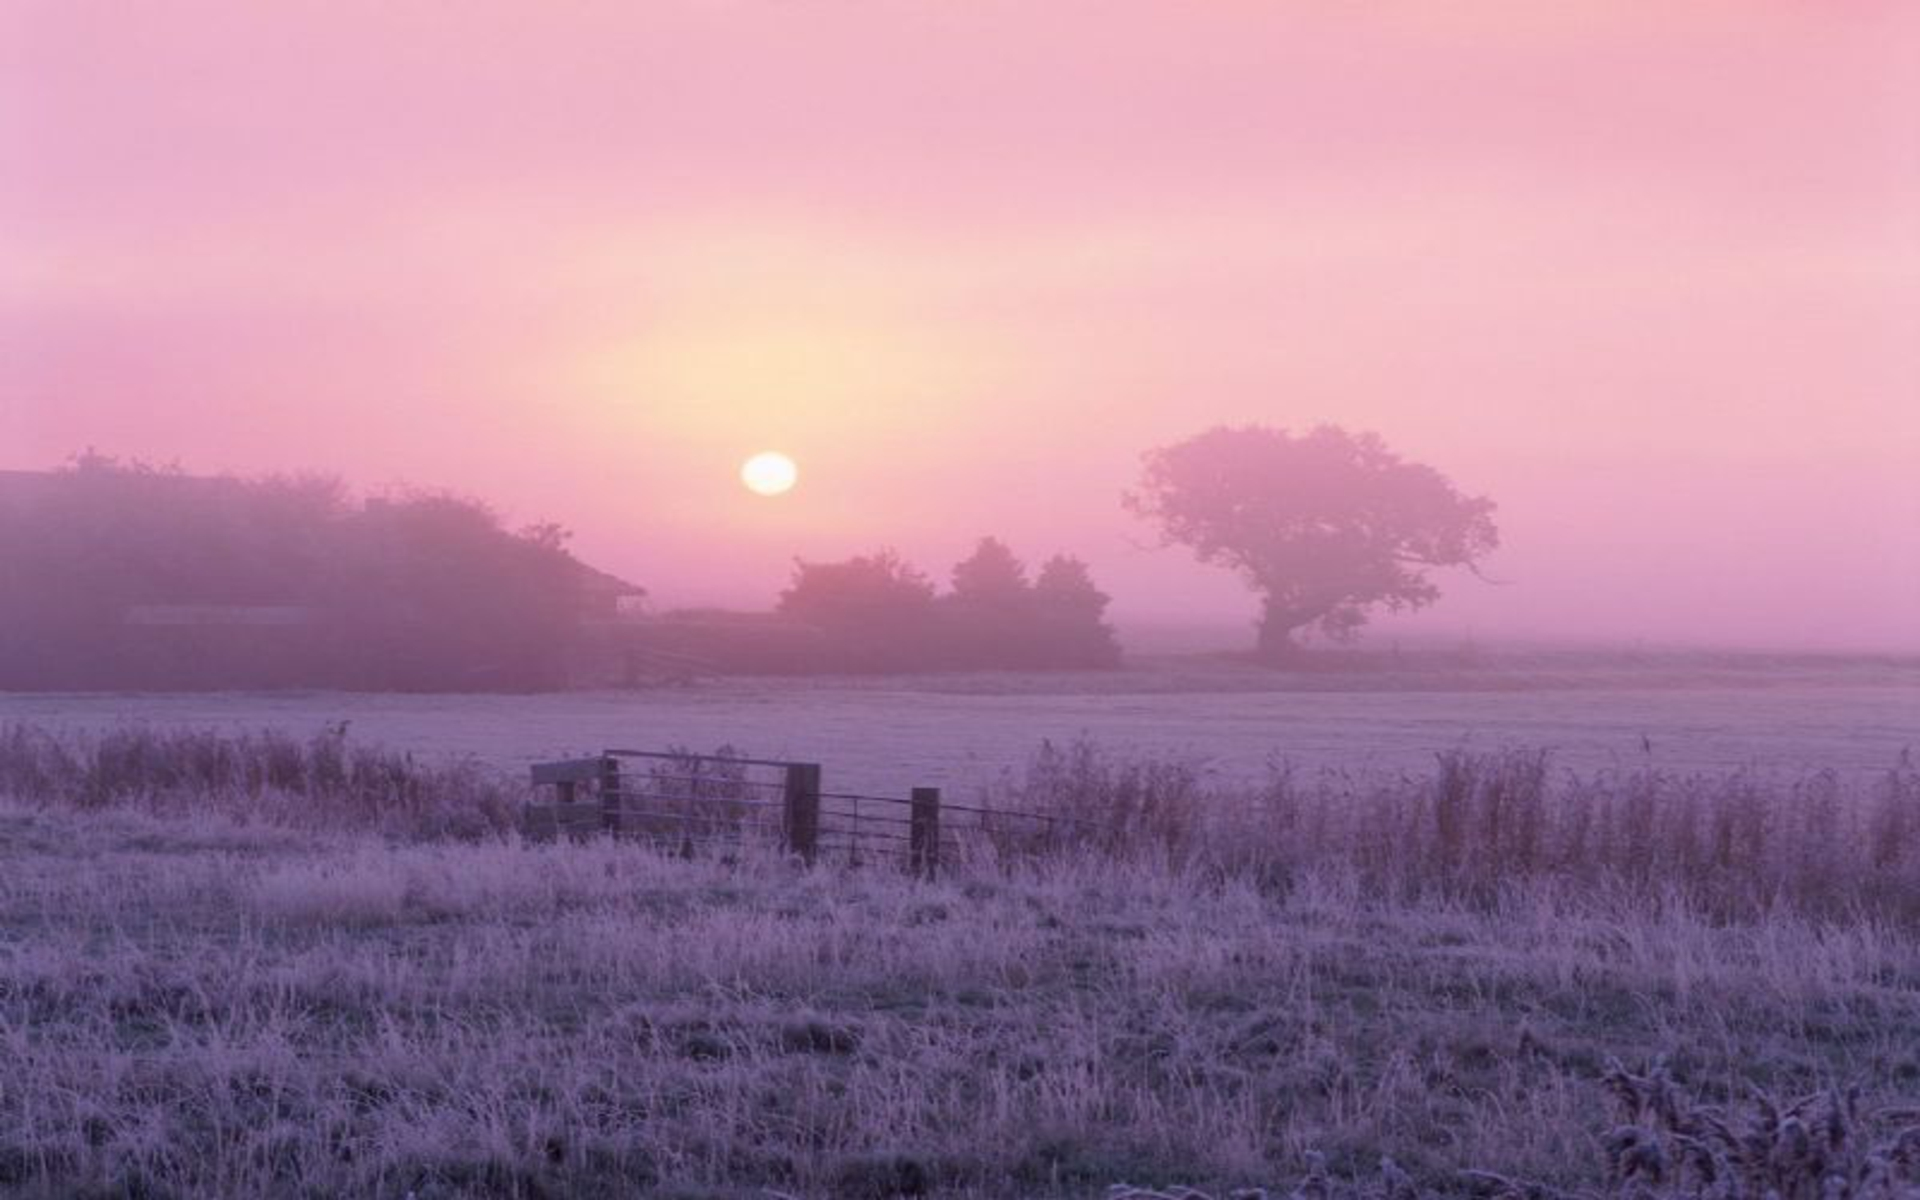 DOWNLOAD: Foggy Sunrise free background 2560 x 1600